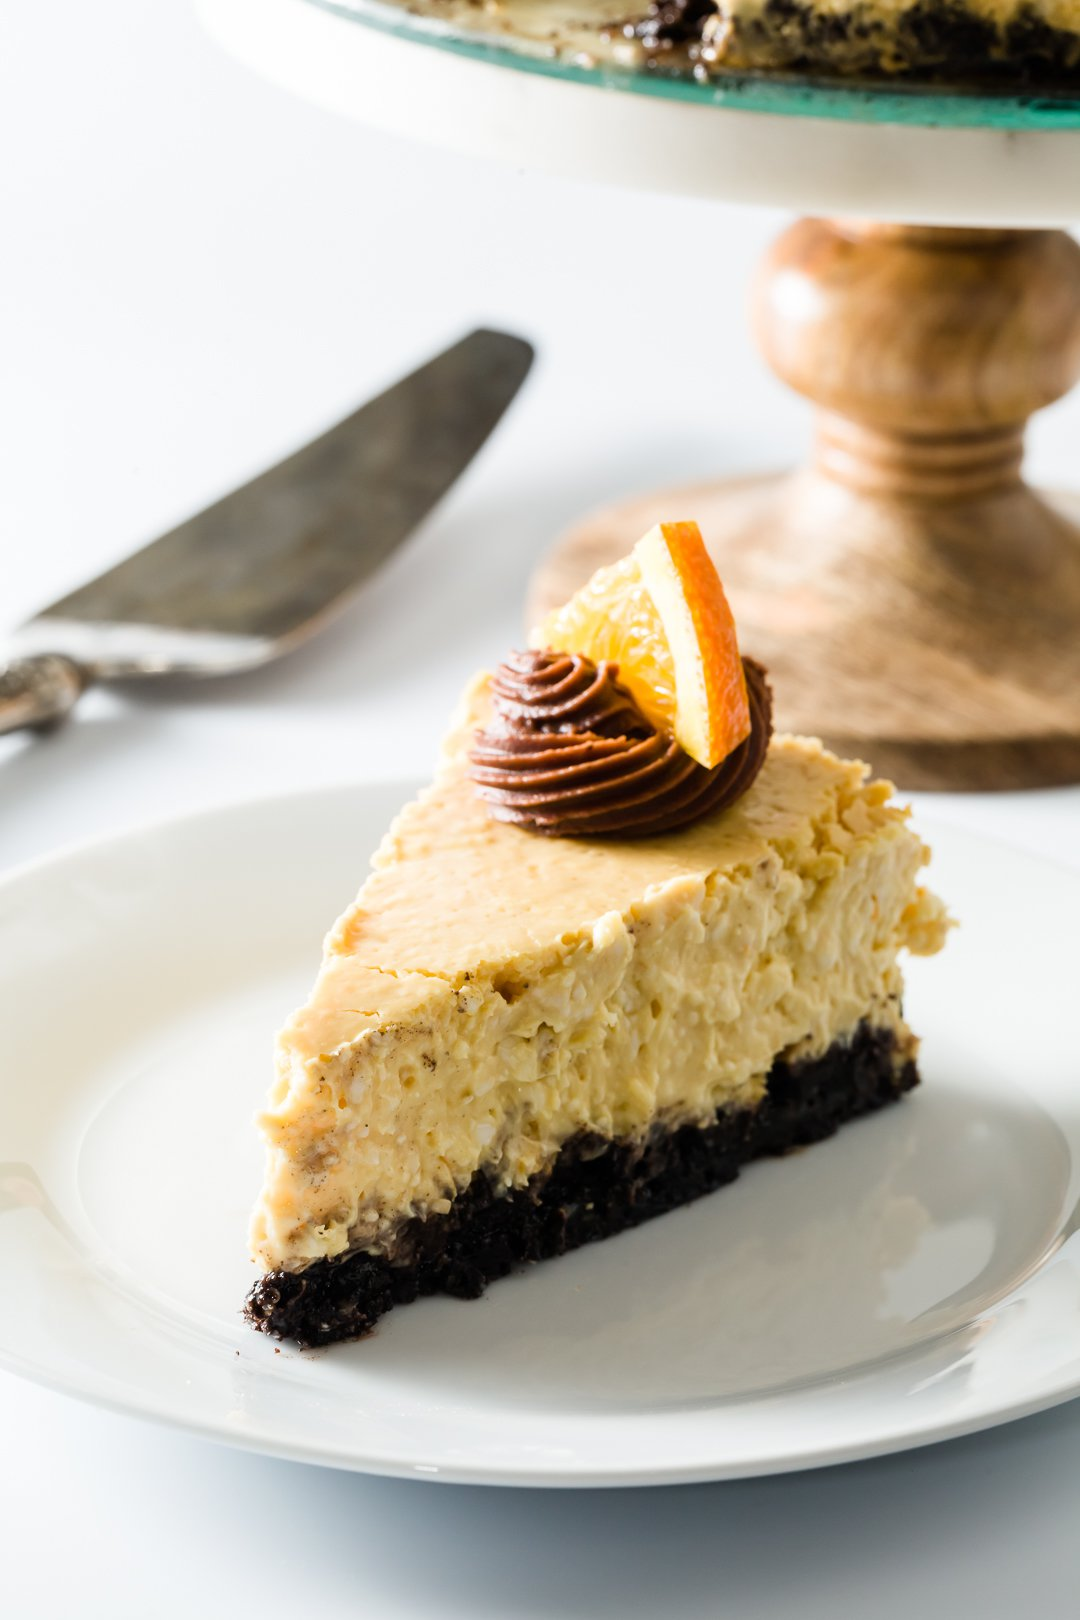 A slice of orange cheesecake with a cake stand in the background